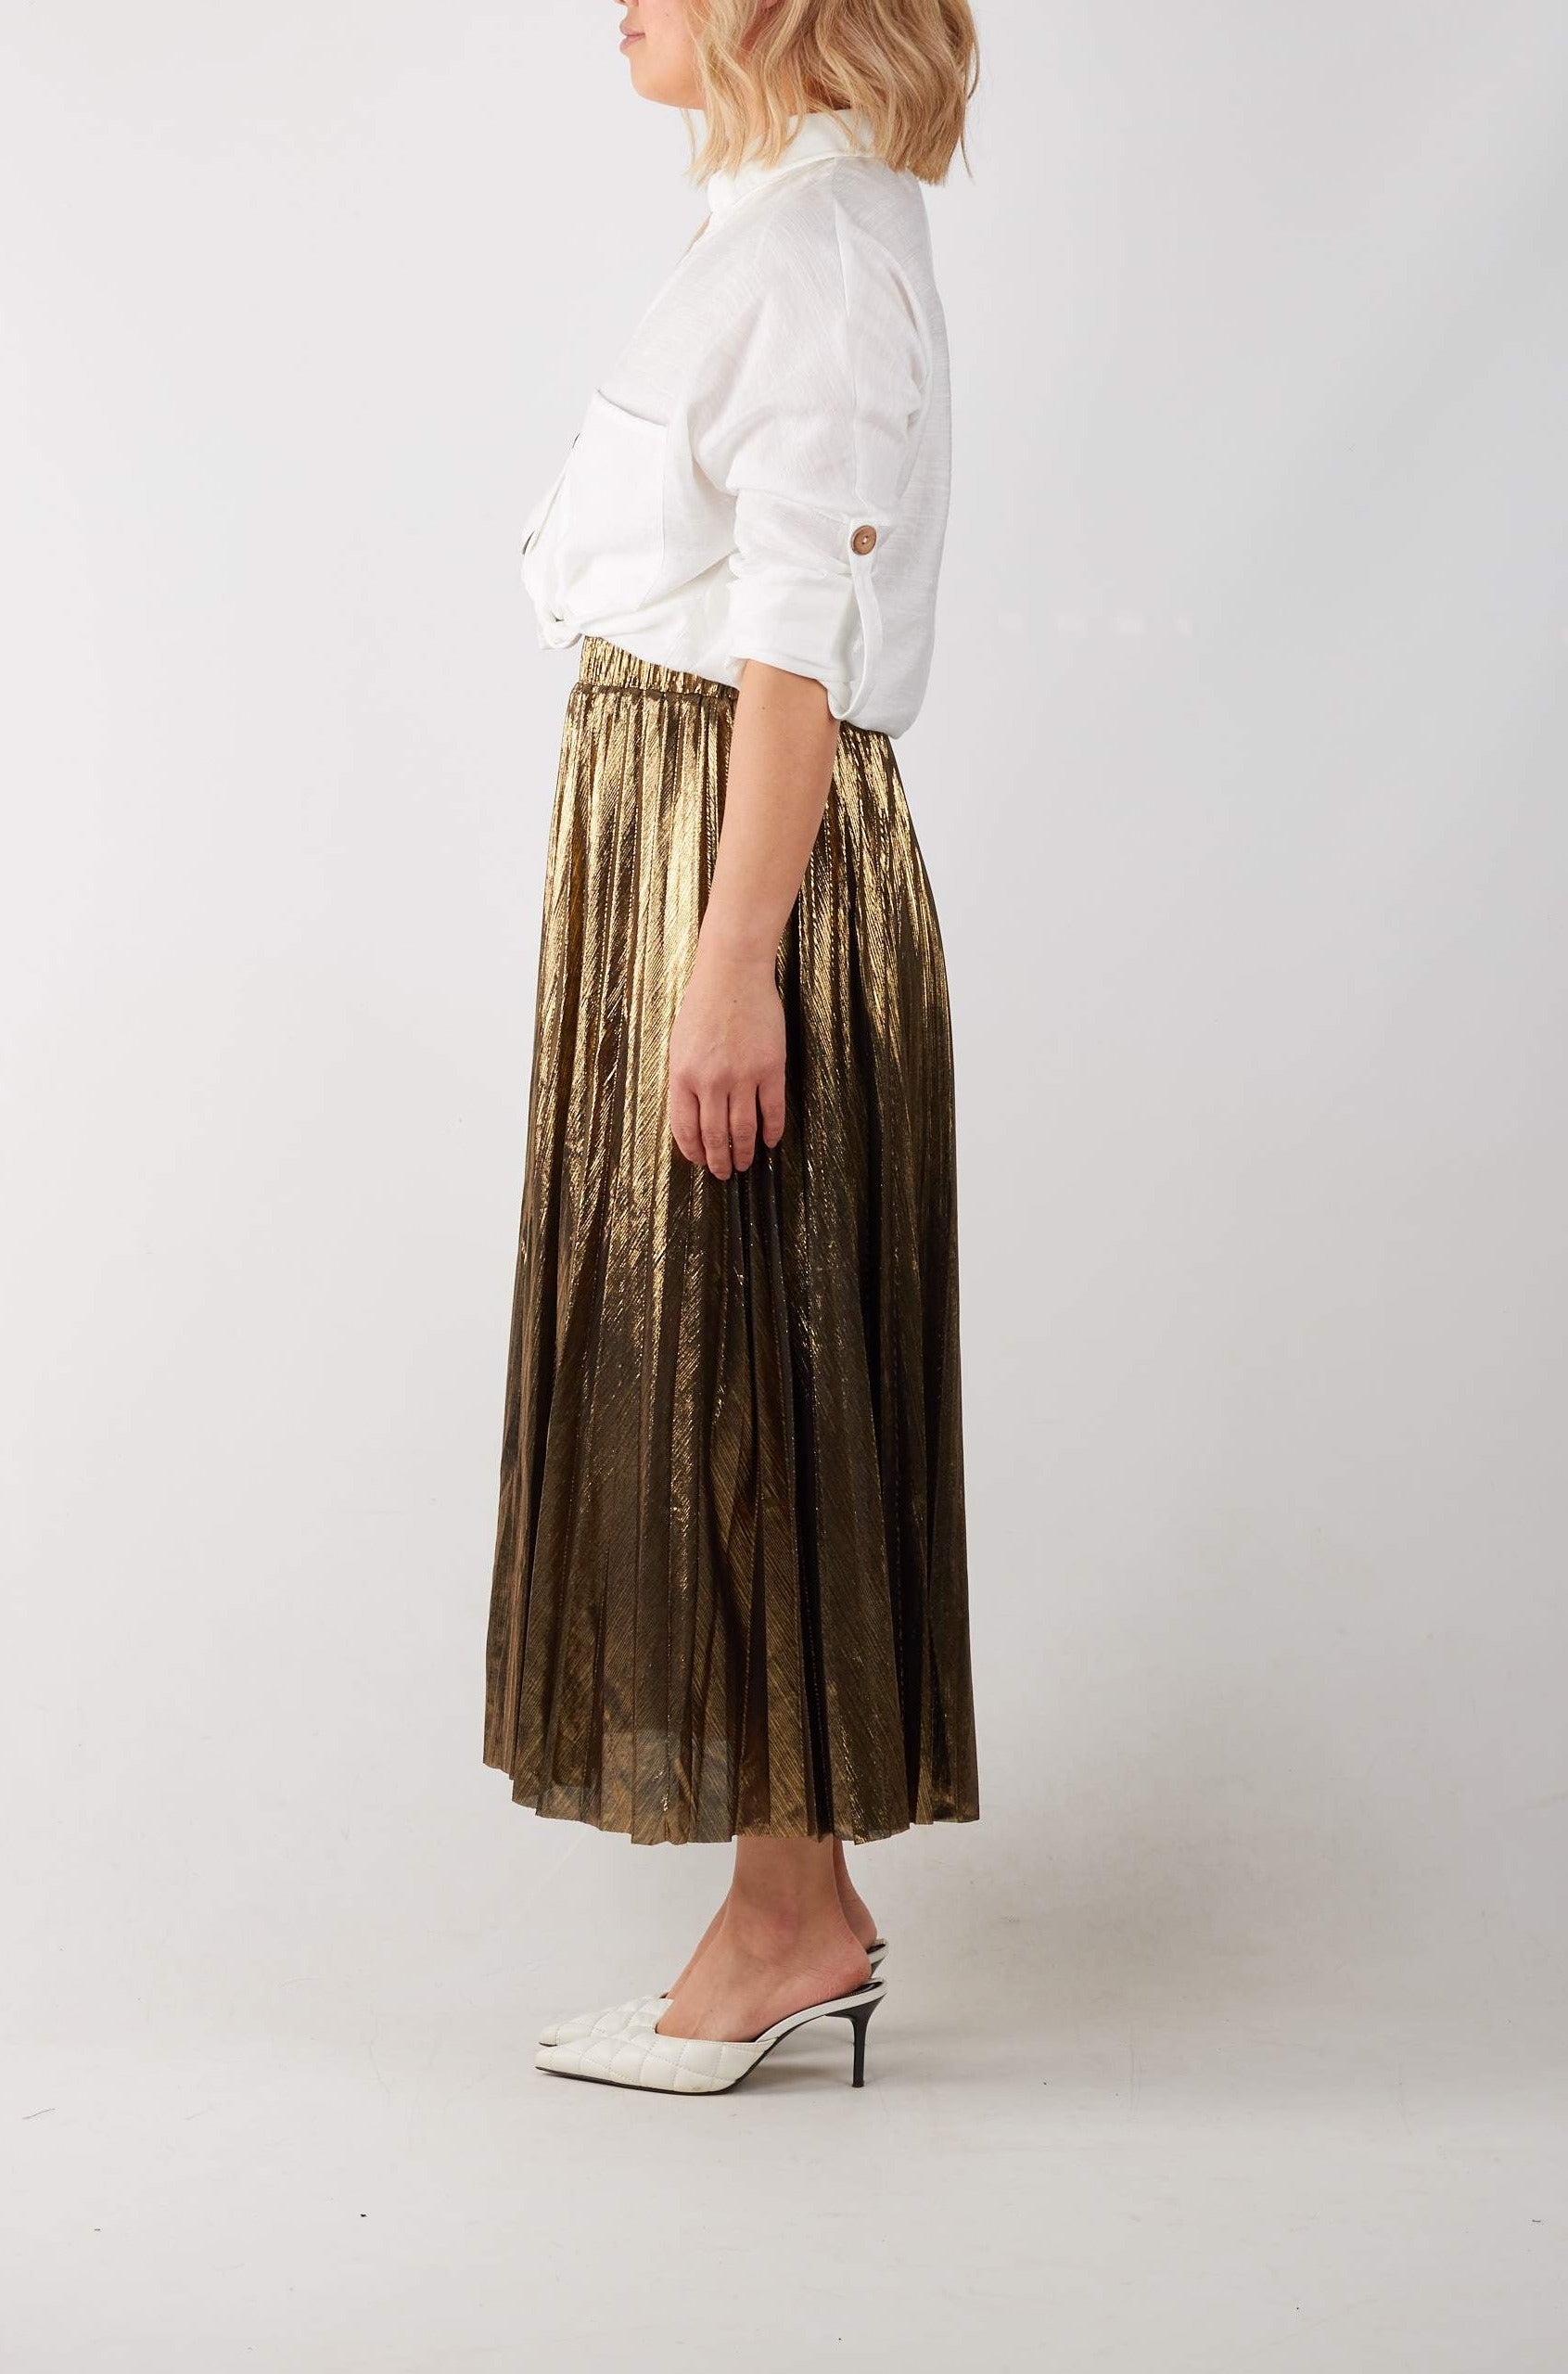 LUNAR SKIRT- GOLD